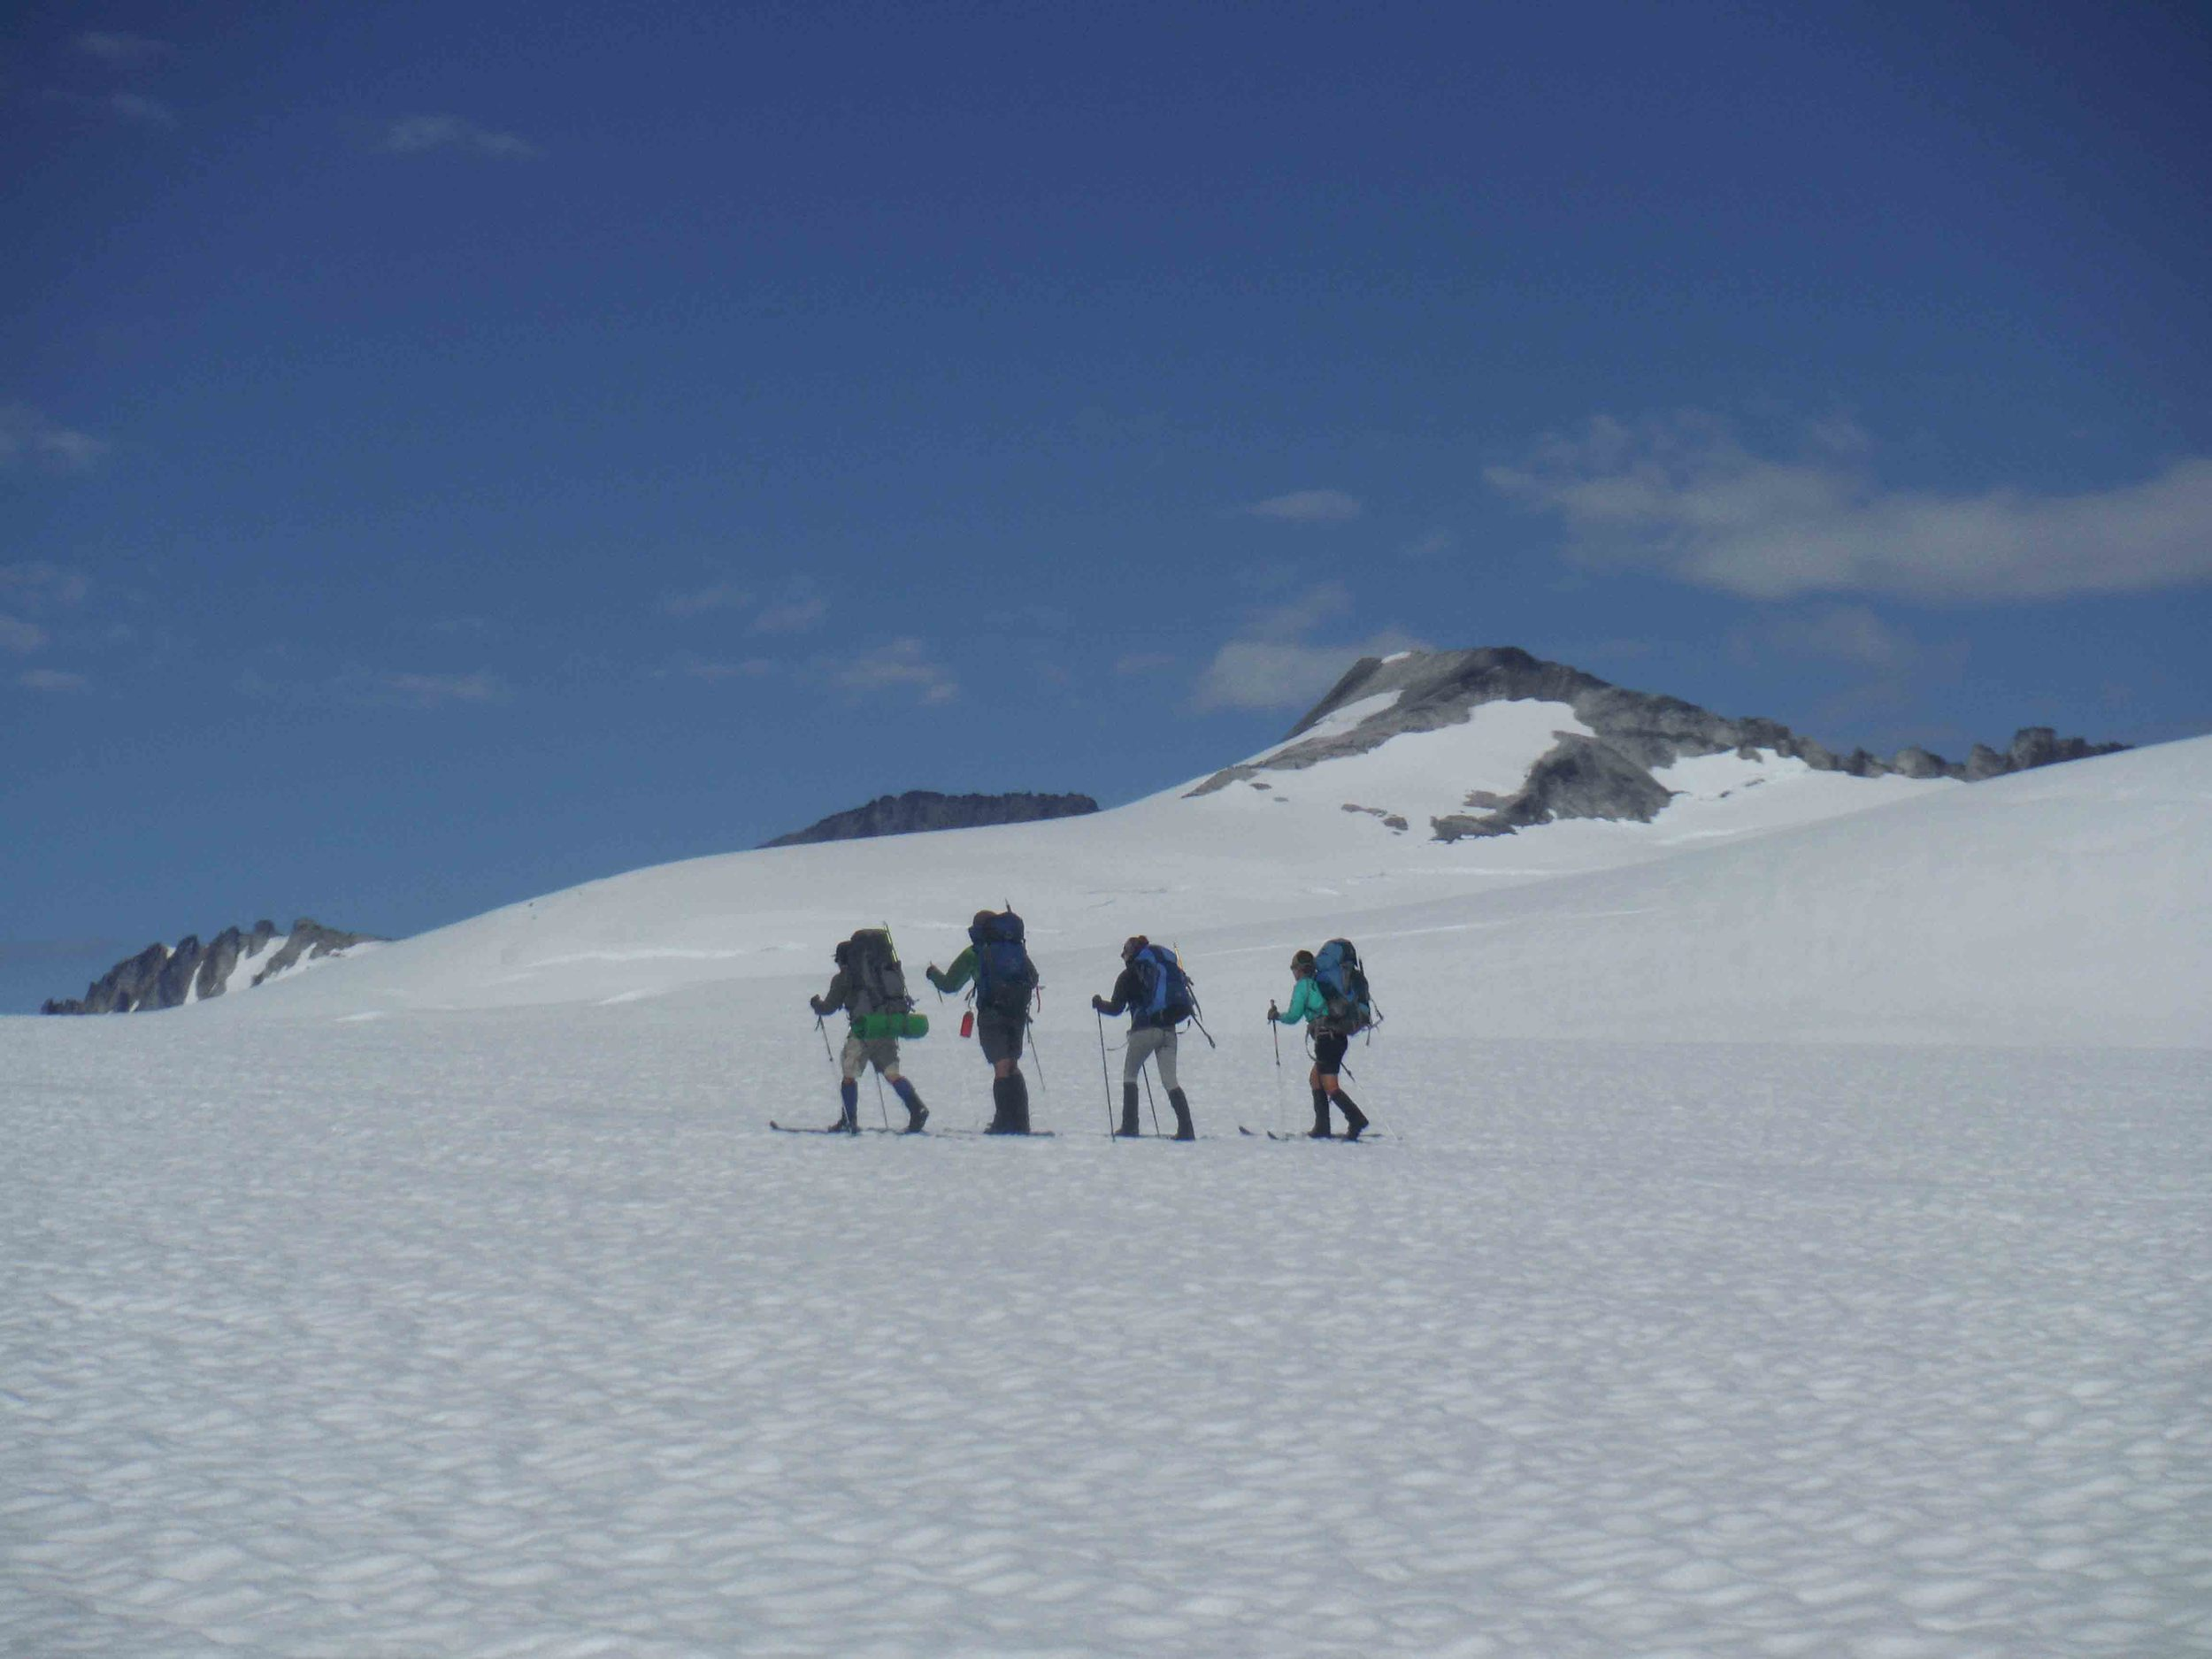 A group of four carries on in good spirits on Matthes Glacier. Mt. Moore - with Camp 8 on the ridge of rock pointing down towards the first skier - is in the background.  Photo by Sarah Bouckoms